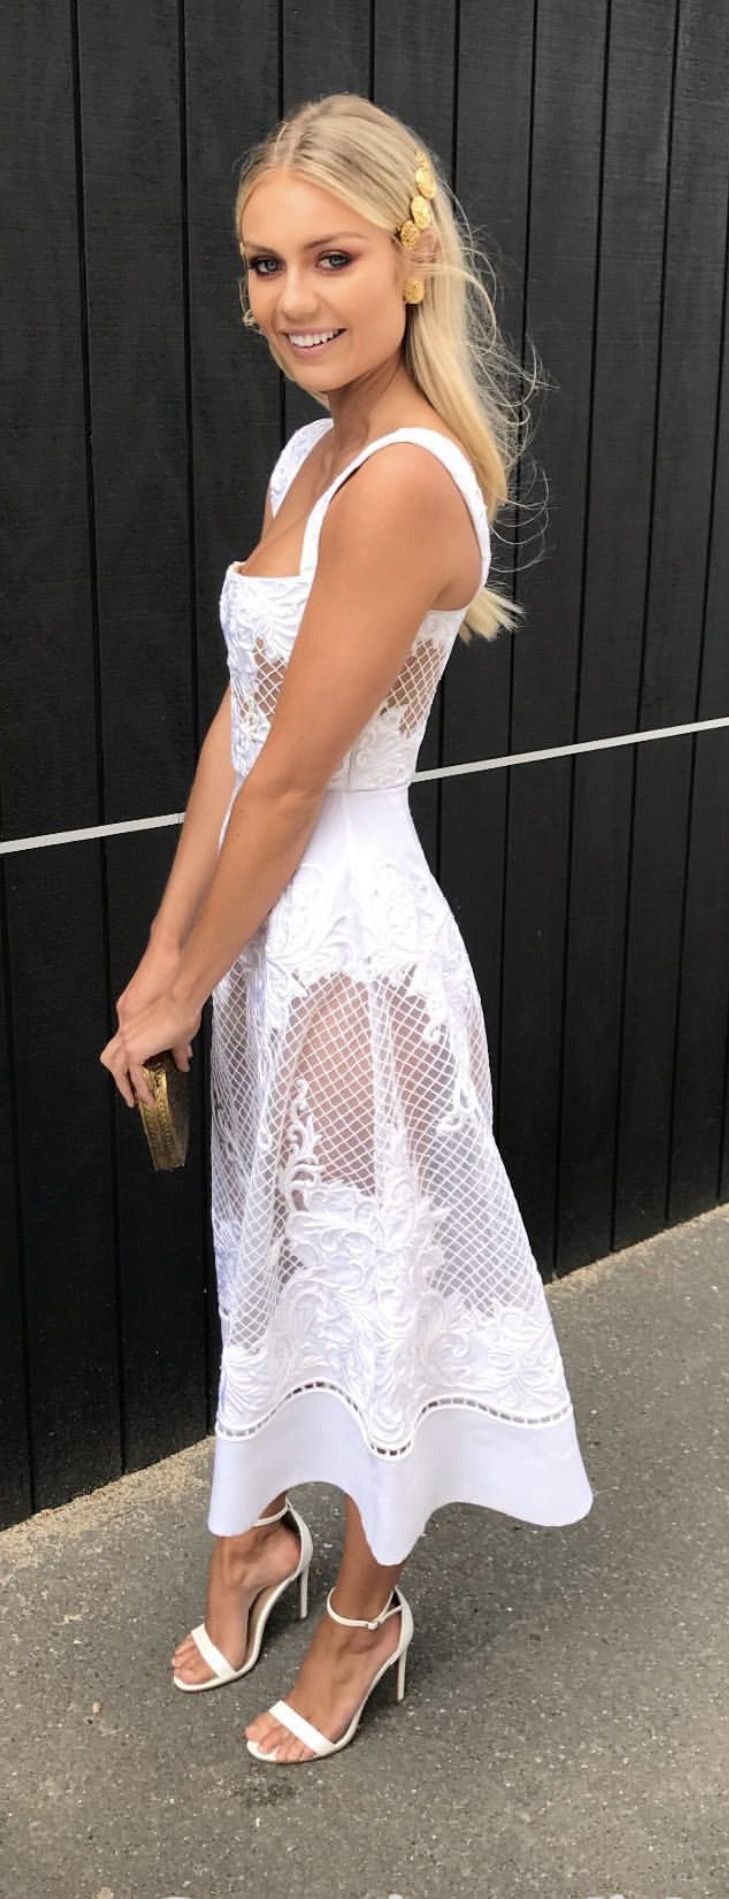 White Lace Dress Races одежда In 2019 Dresses Fashion